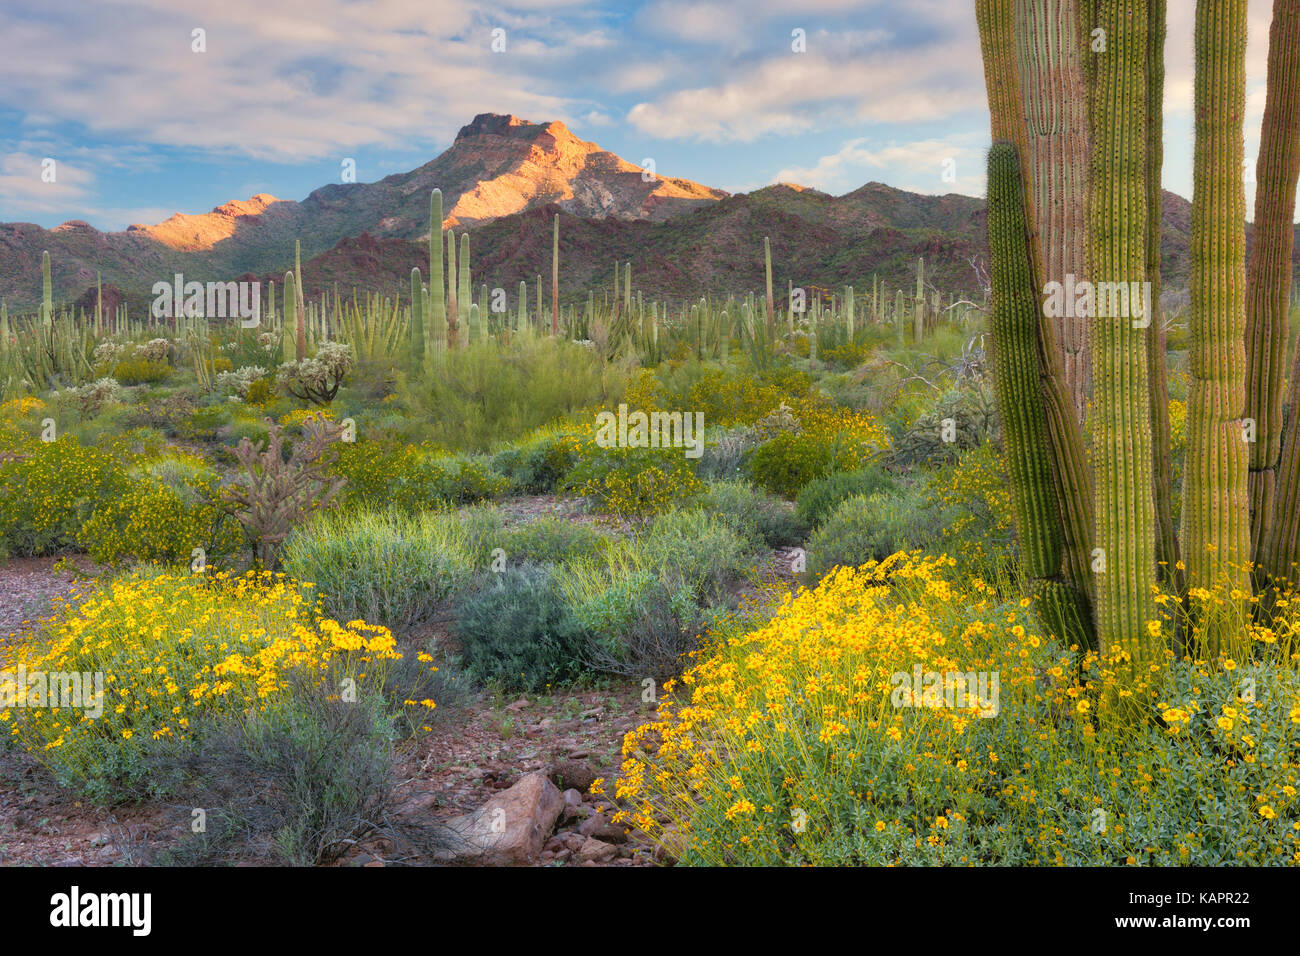 First light on Tillotson Peak with spring bloom of brittle bush in Arizona's Organ Pipe Cactus National Monument. - Stock Image